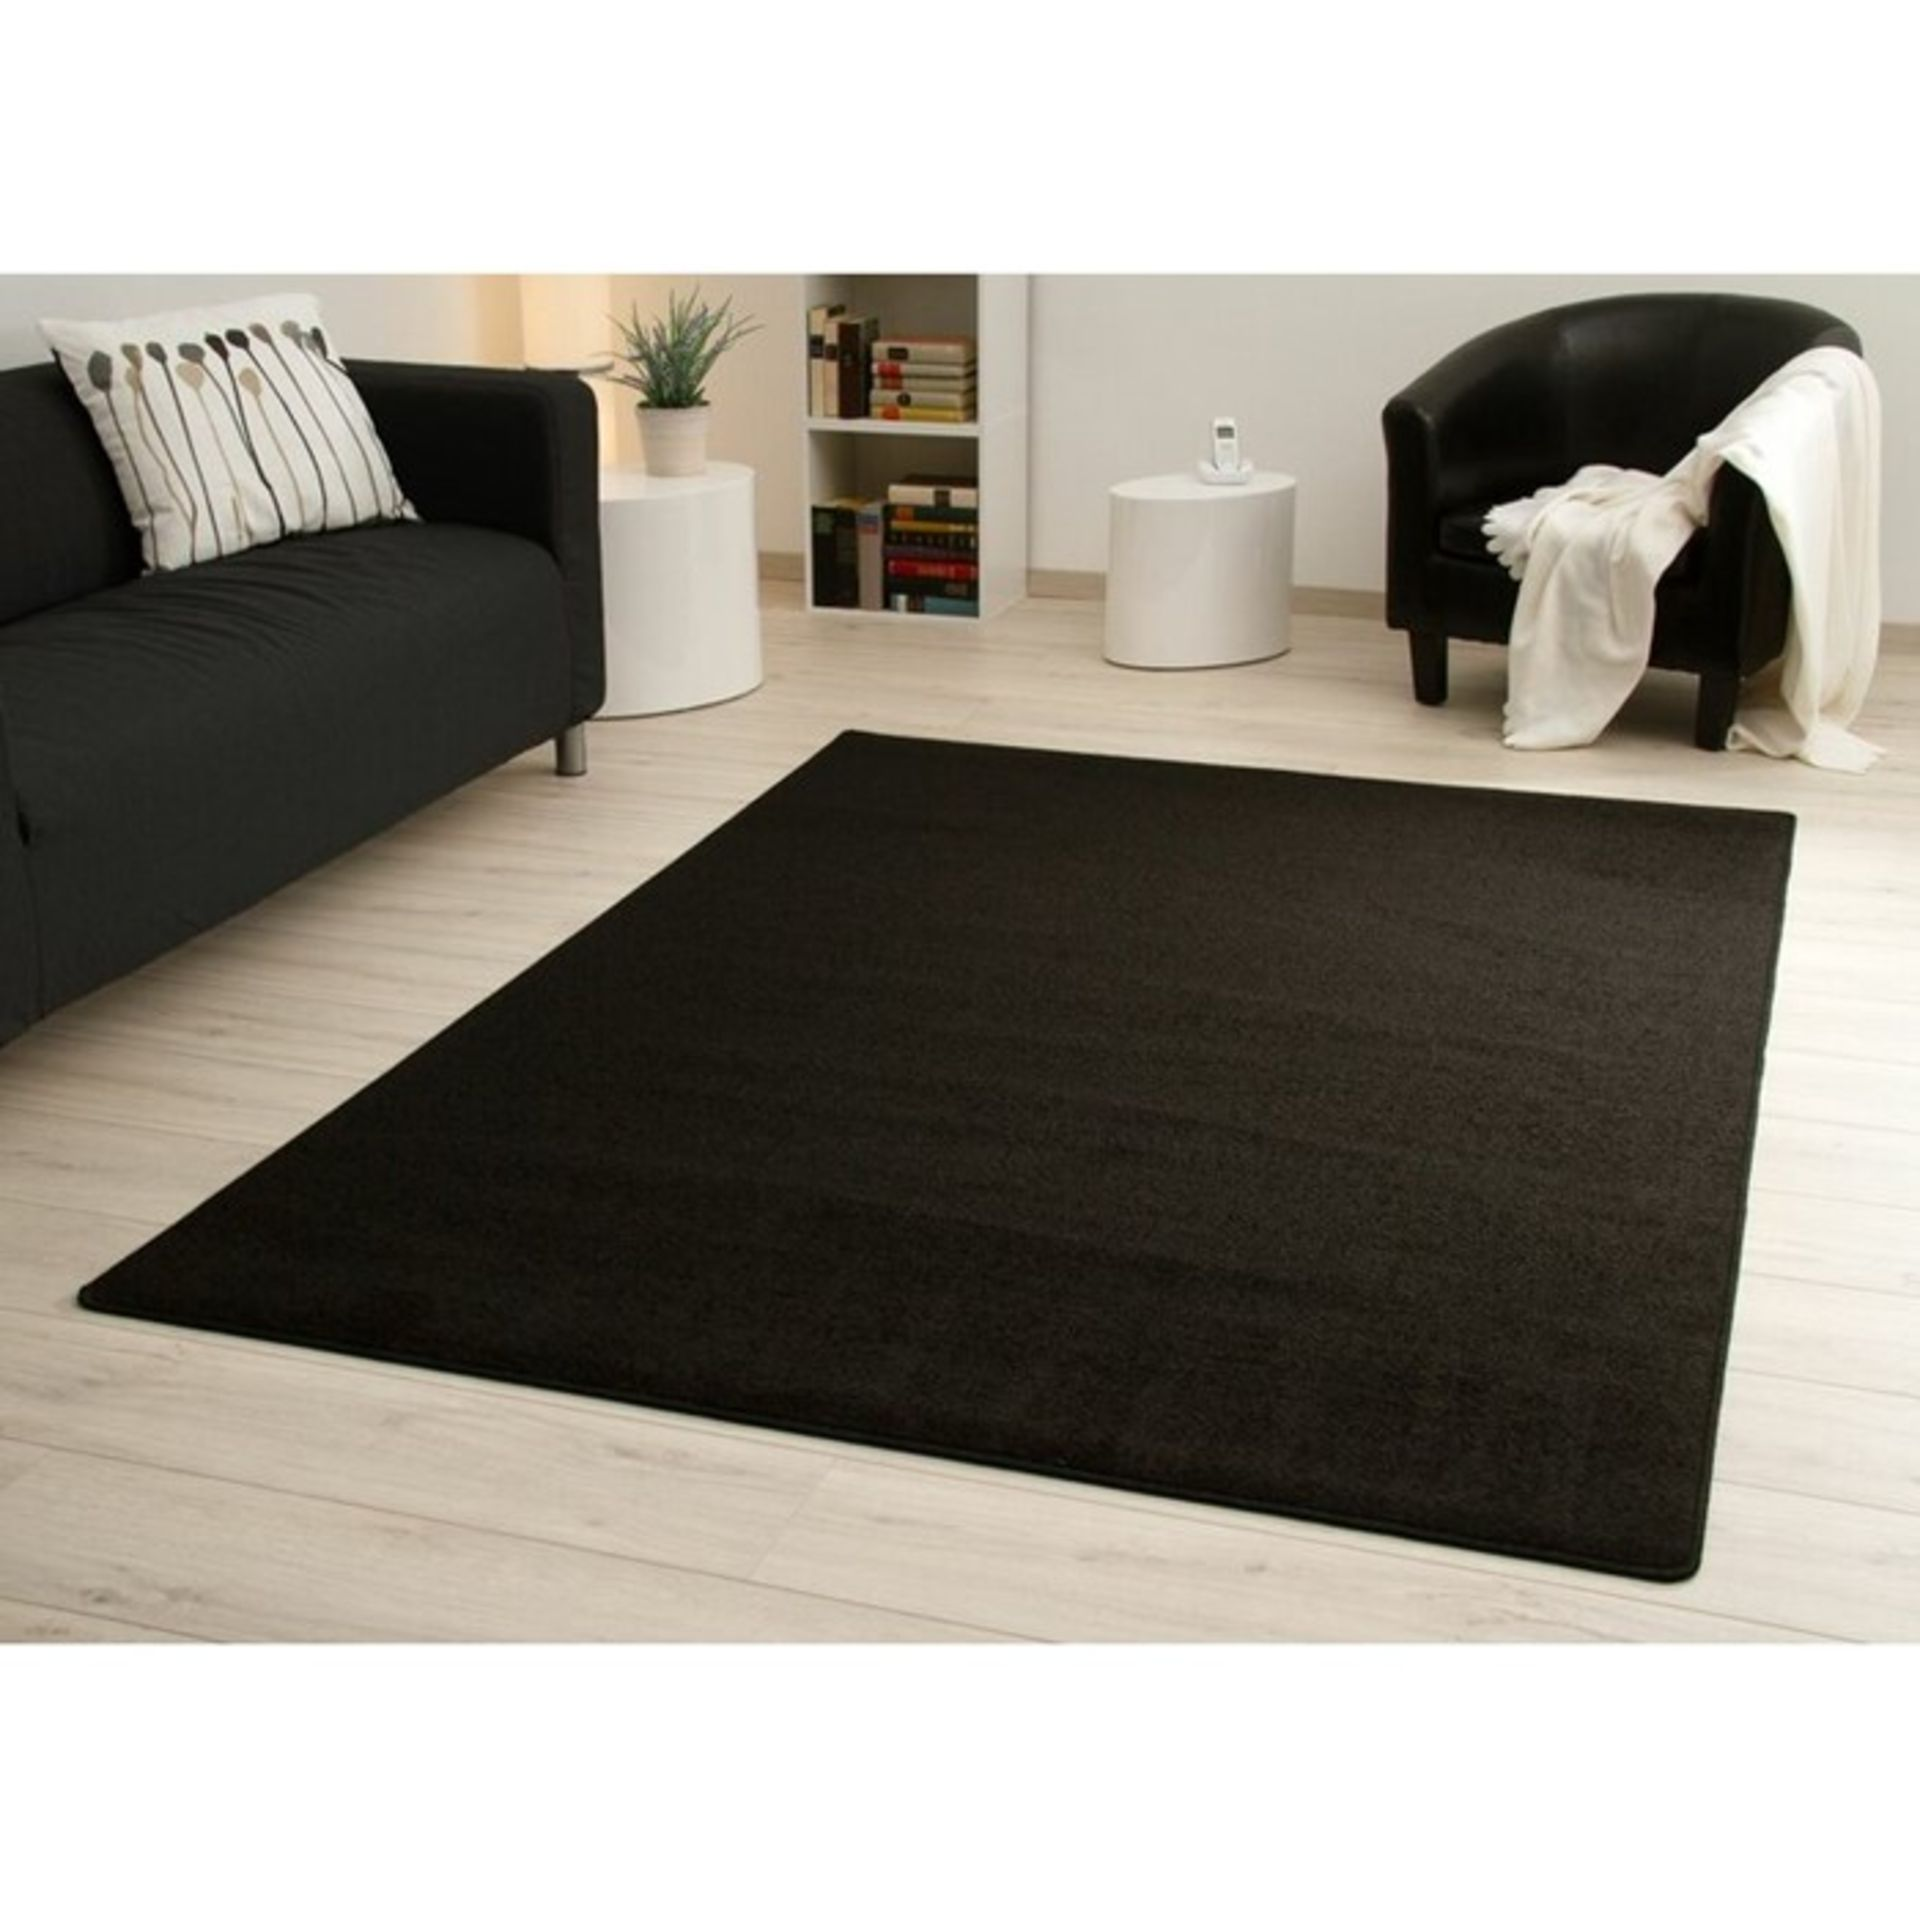 ClassicLiving,Teppich Arenberg in Schwarz RRP - £94.99 (H16053 - 11/36 -STFE1097.42389430)